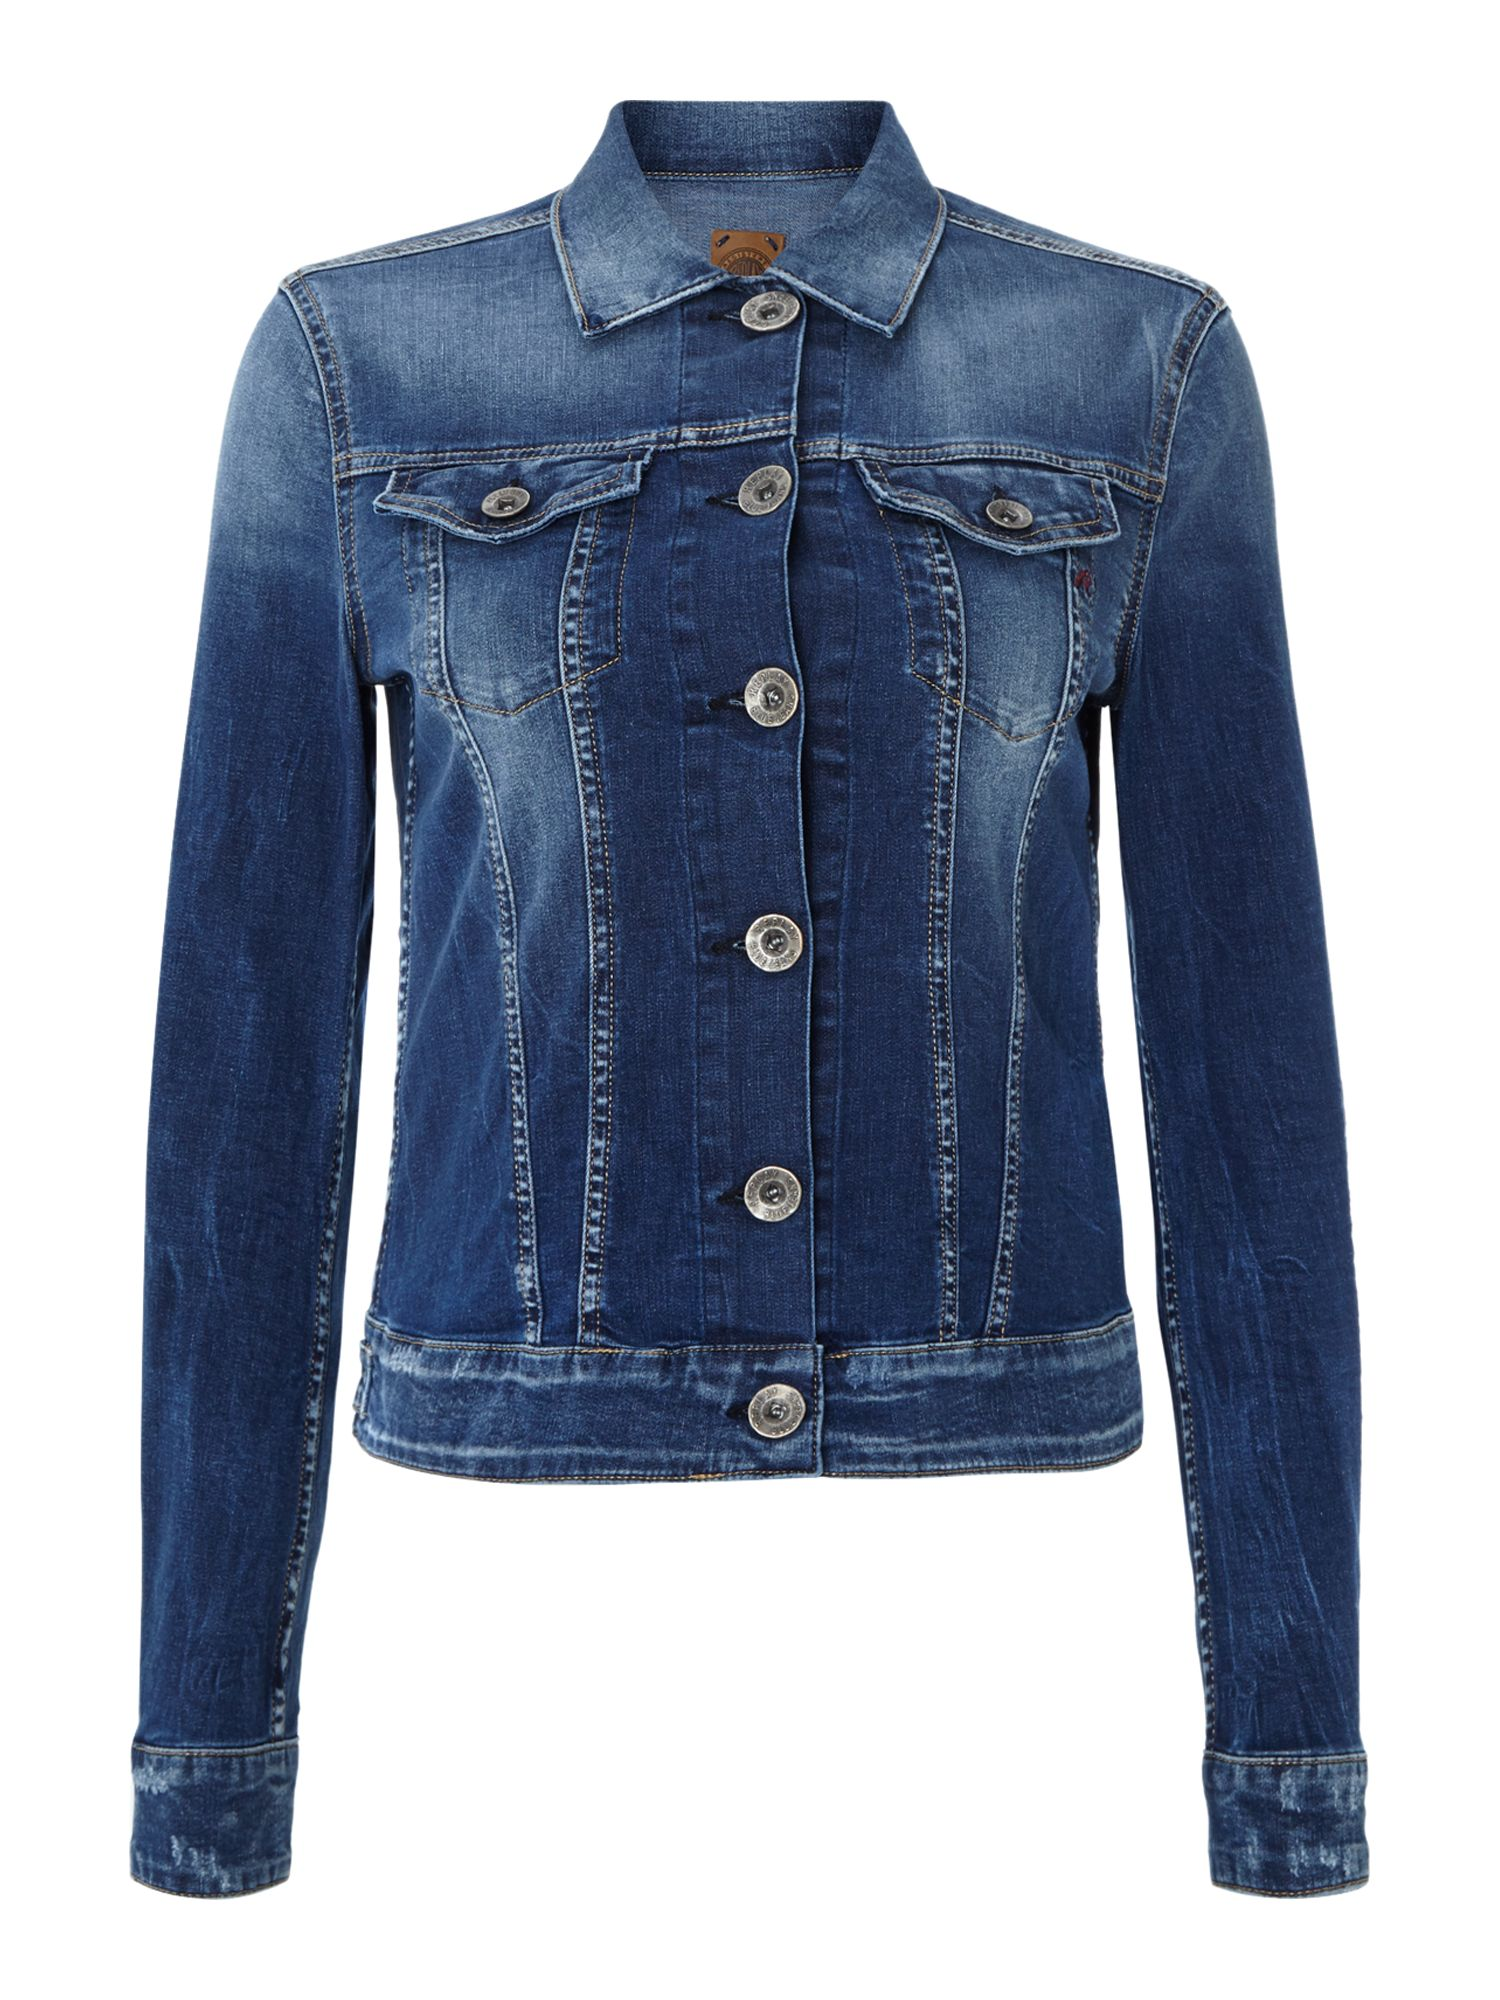 Light denim jacket with buttons